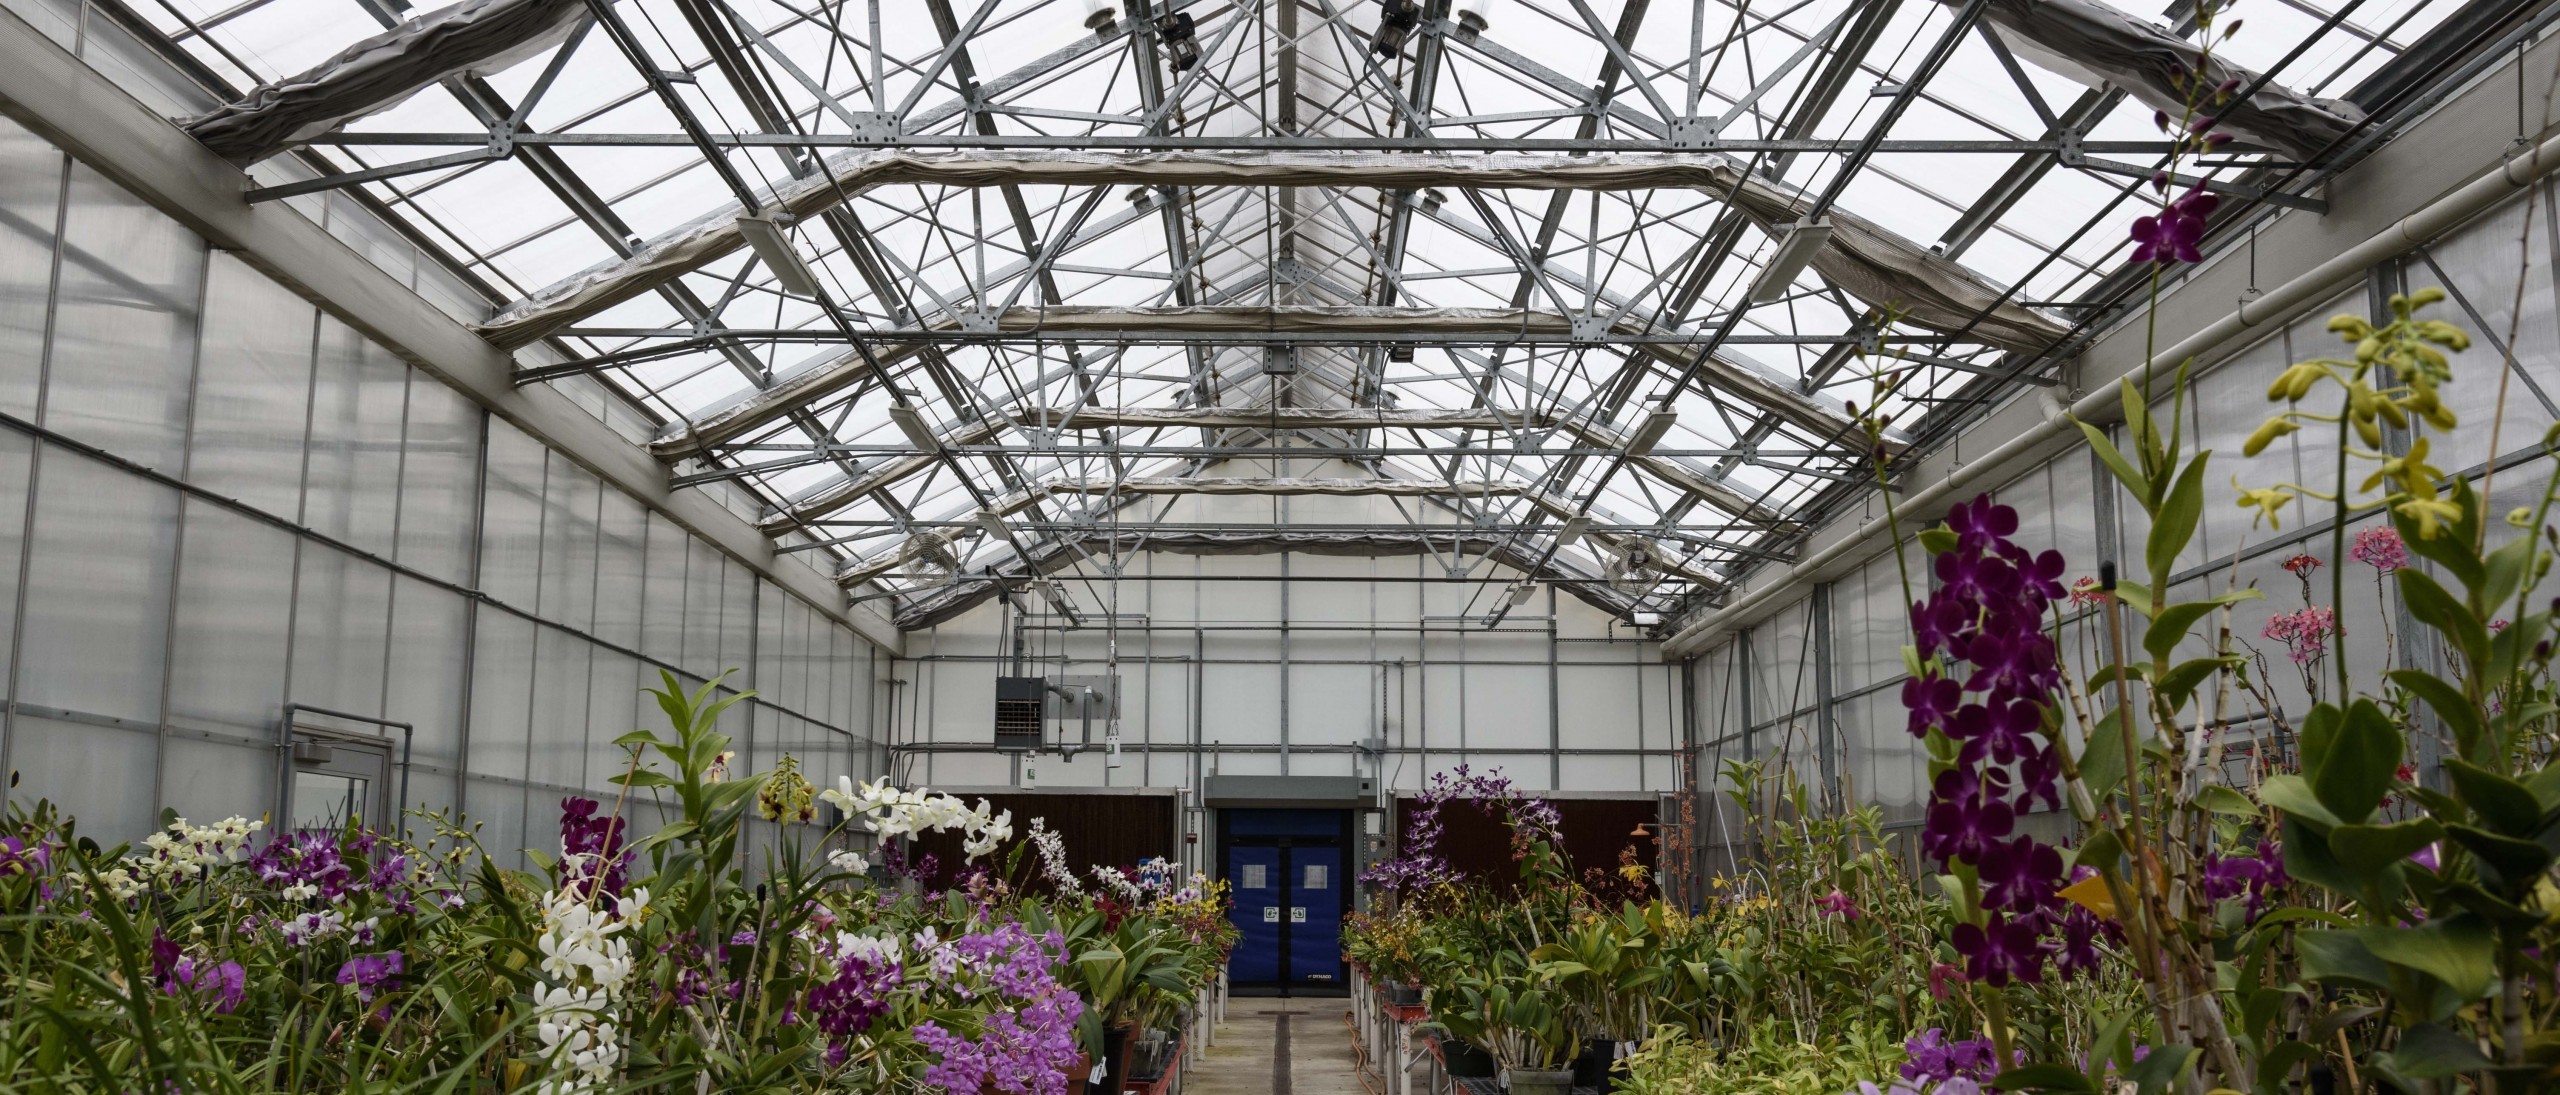 Interior of orchid greenhouse with colorful blooms